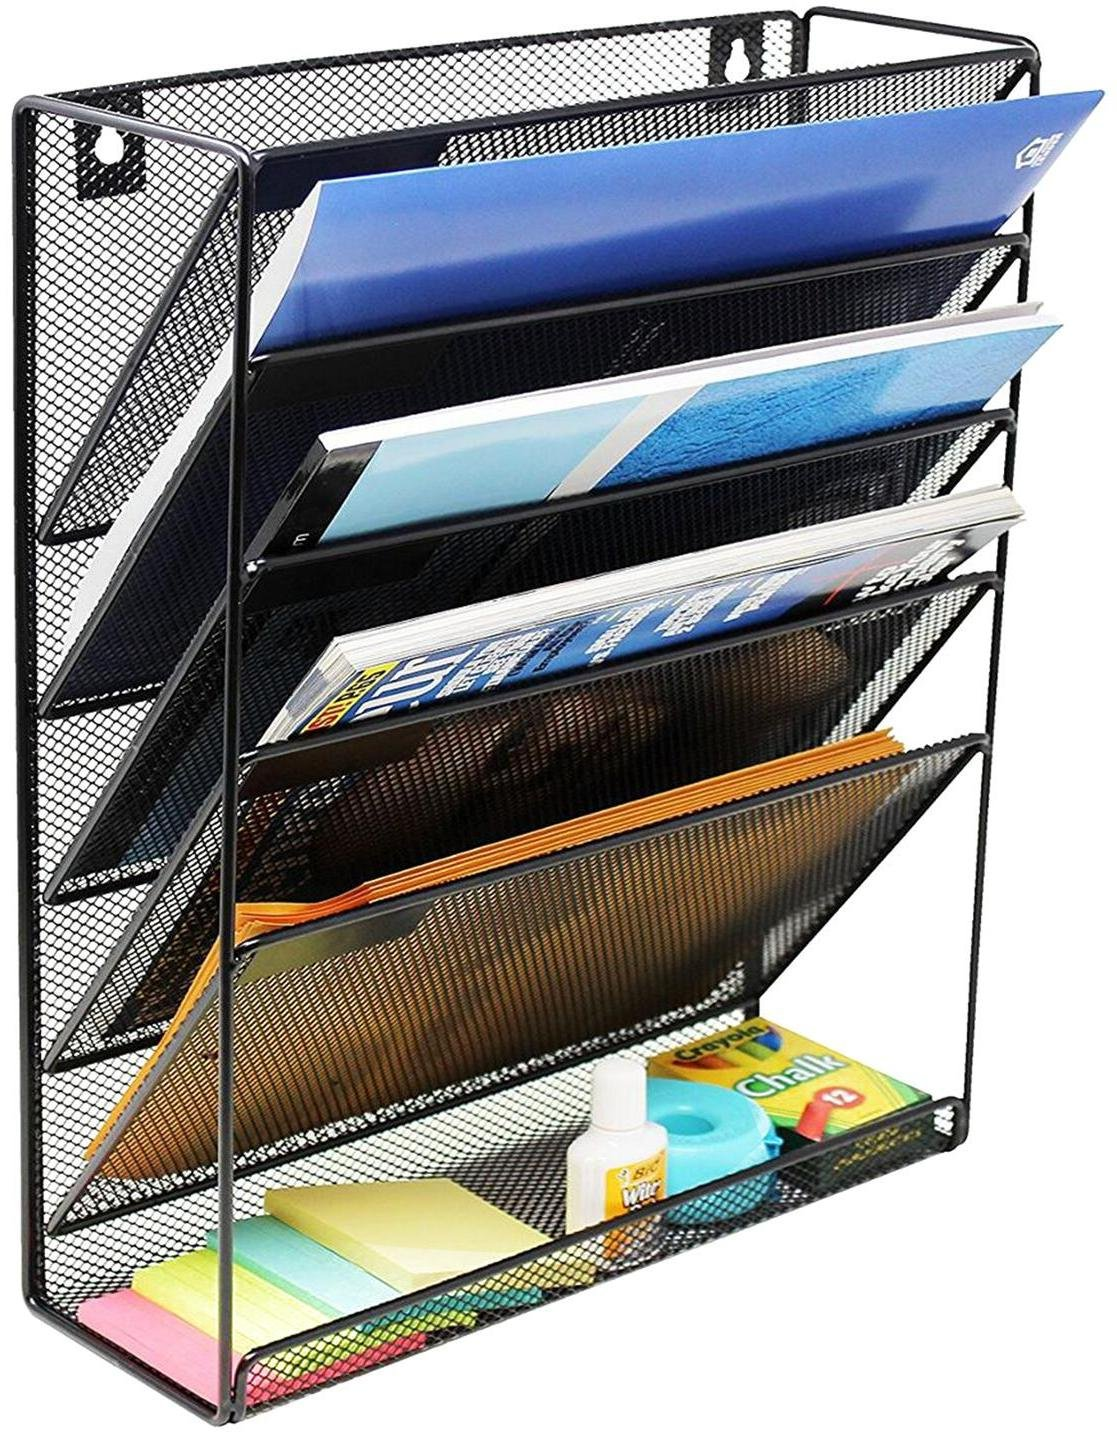 Wall Hanging File Holder Organizer for Office Home, 5-Tier Black Metal- Yuugen Products